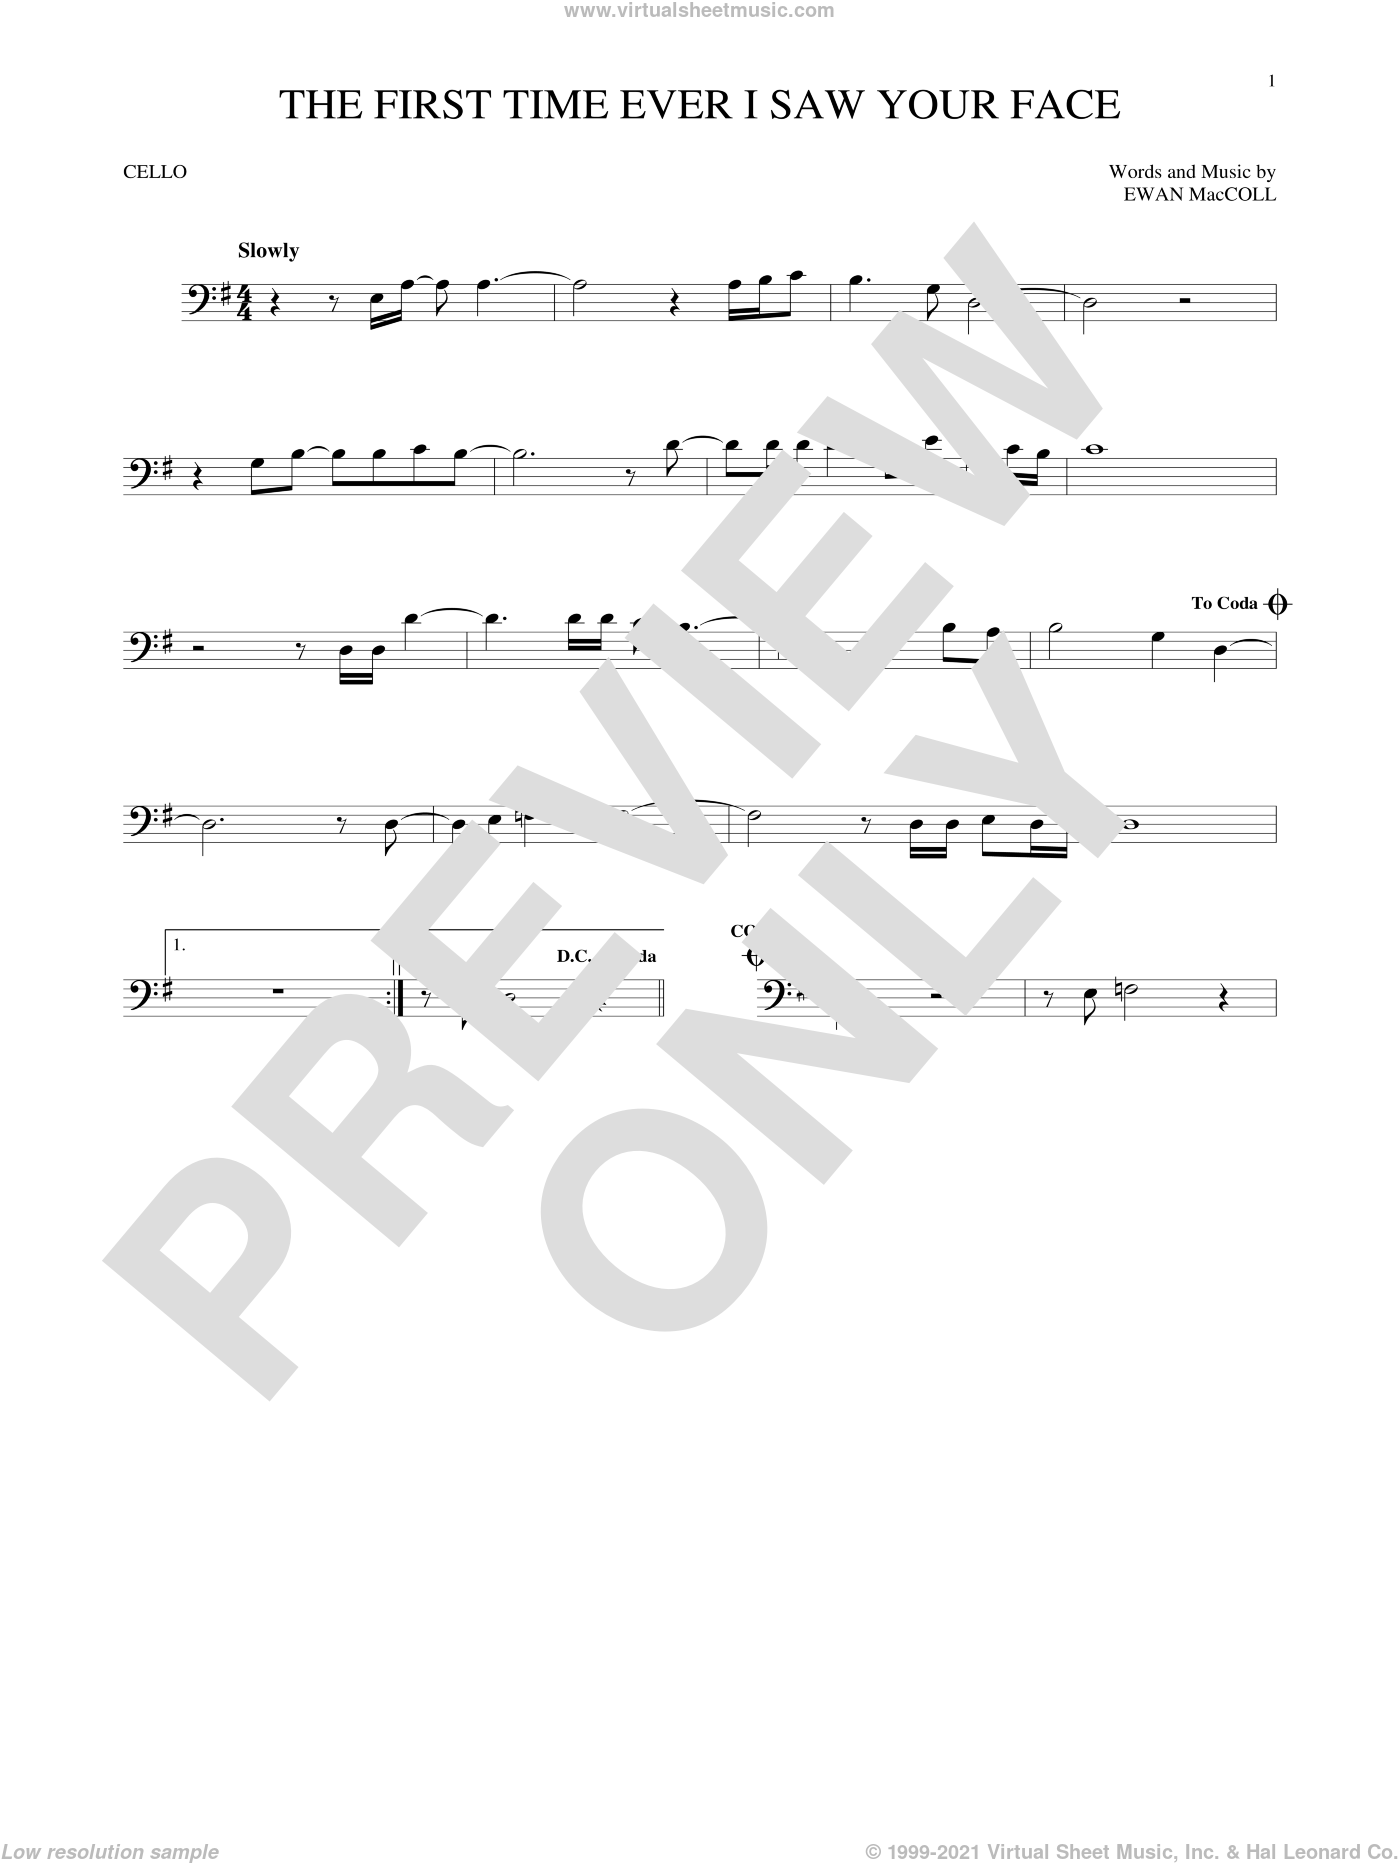 The First Time Ever I Saw Your Face sheet music for cello solo by Roberta Flack and Ewan MacColl, intermediate skill level